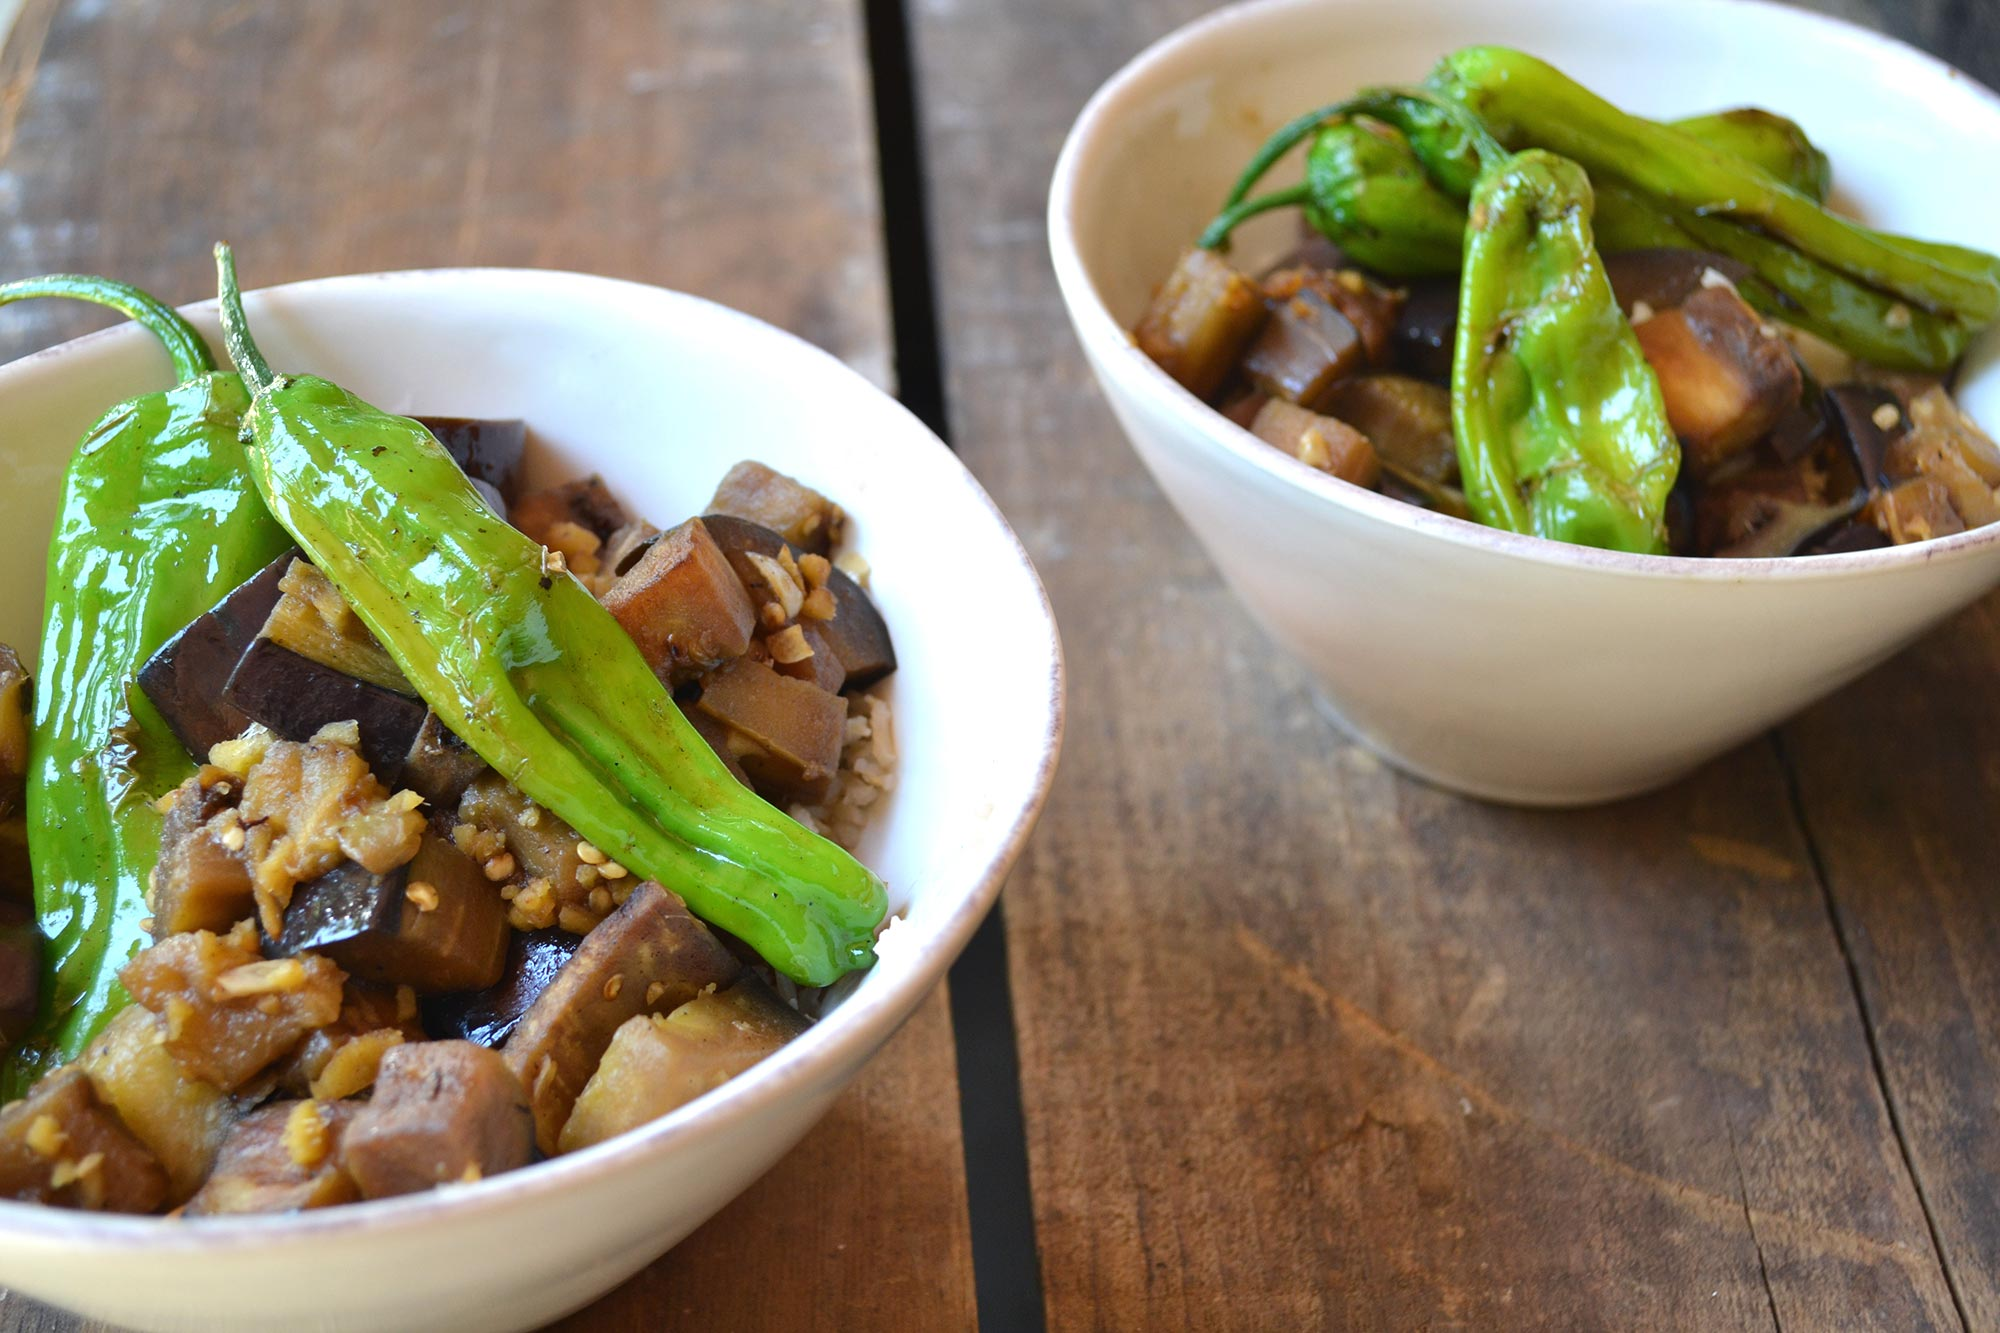 Eggplant Stir Fry with Shishito Peppers